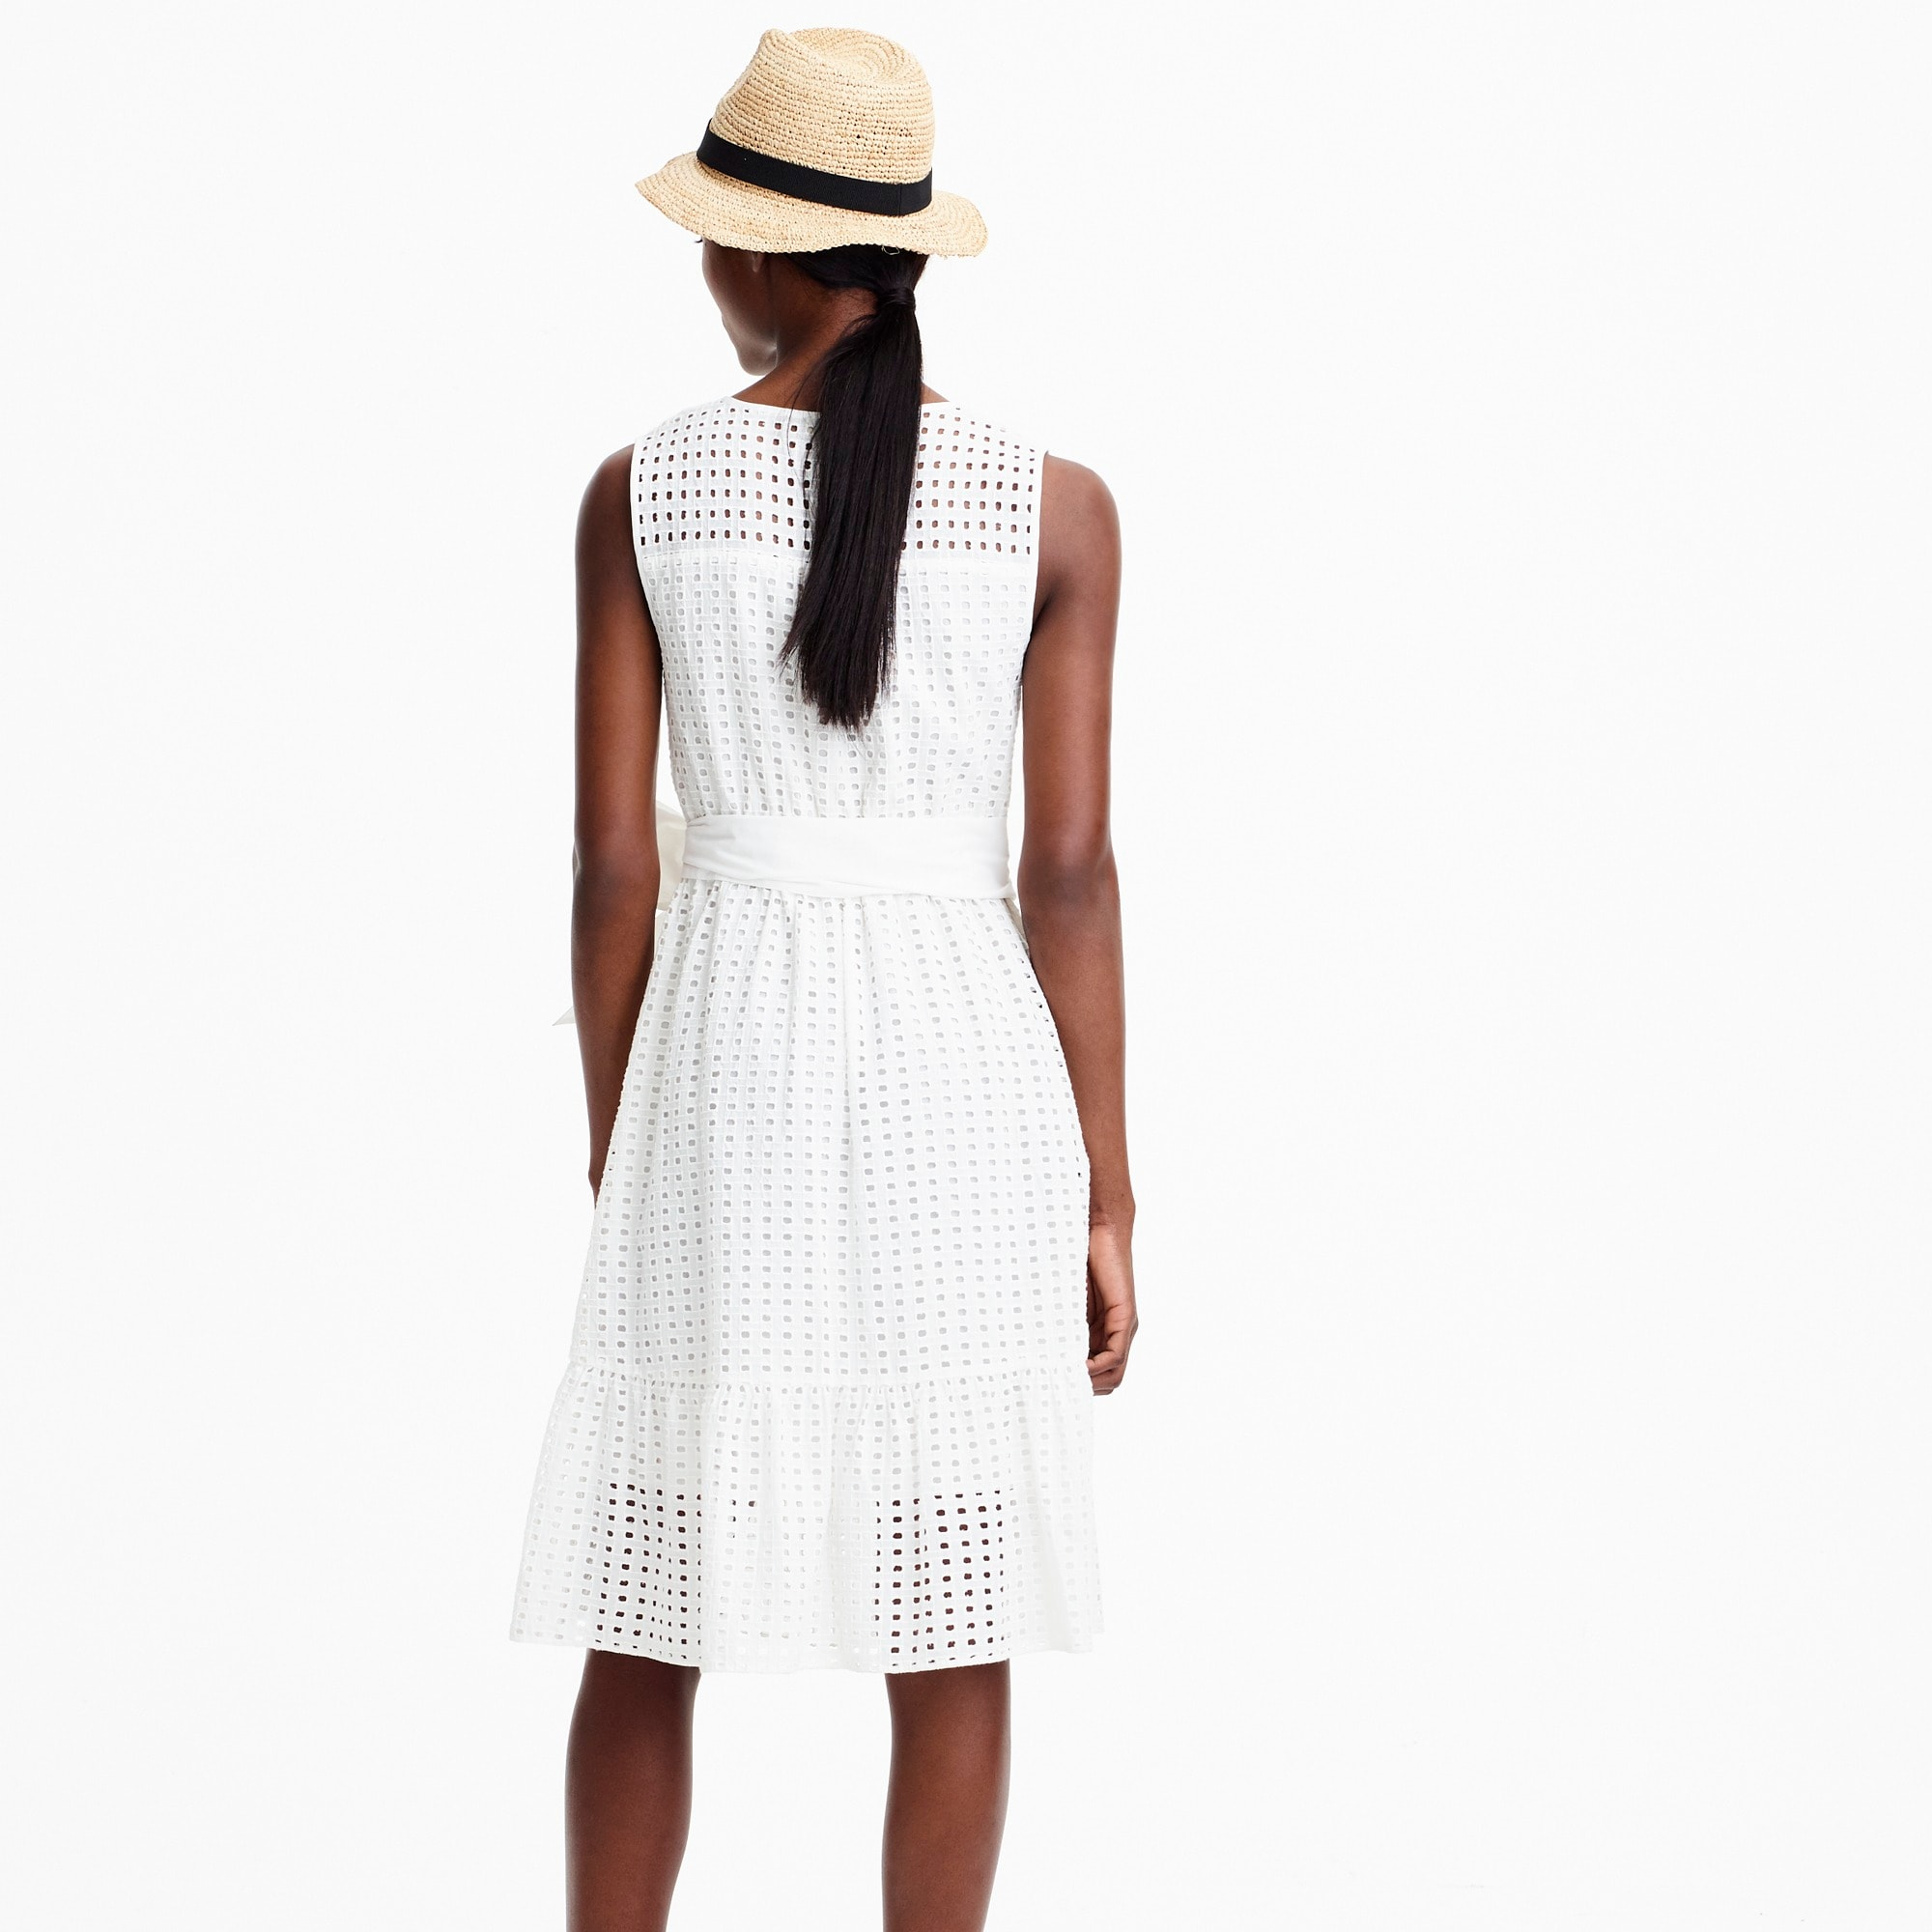 All-over eyelet dress